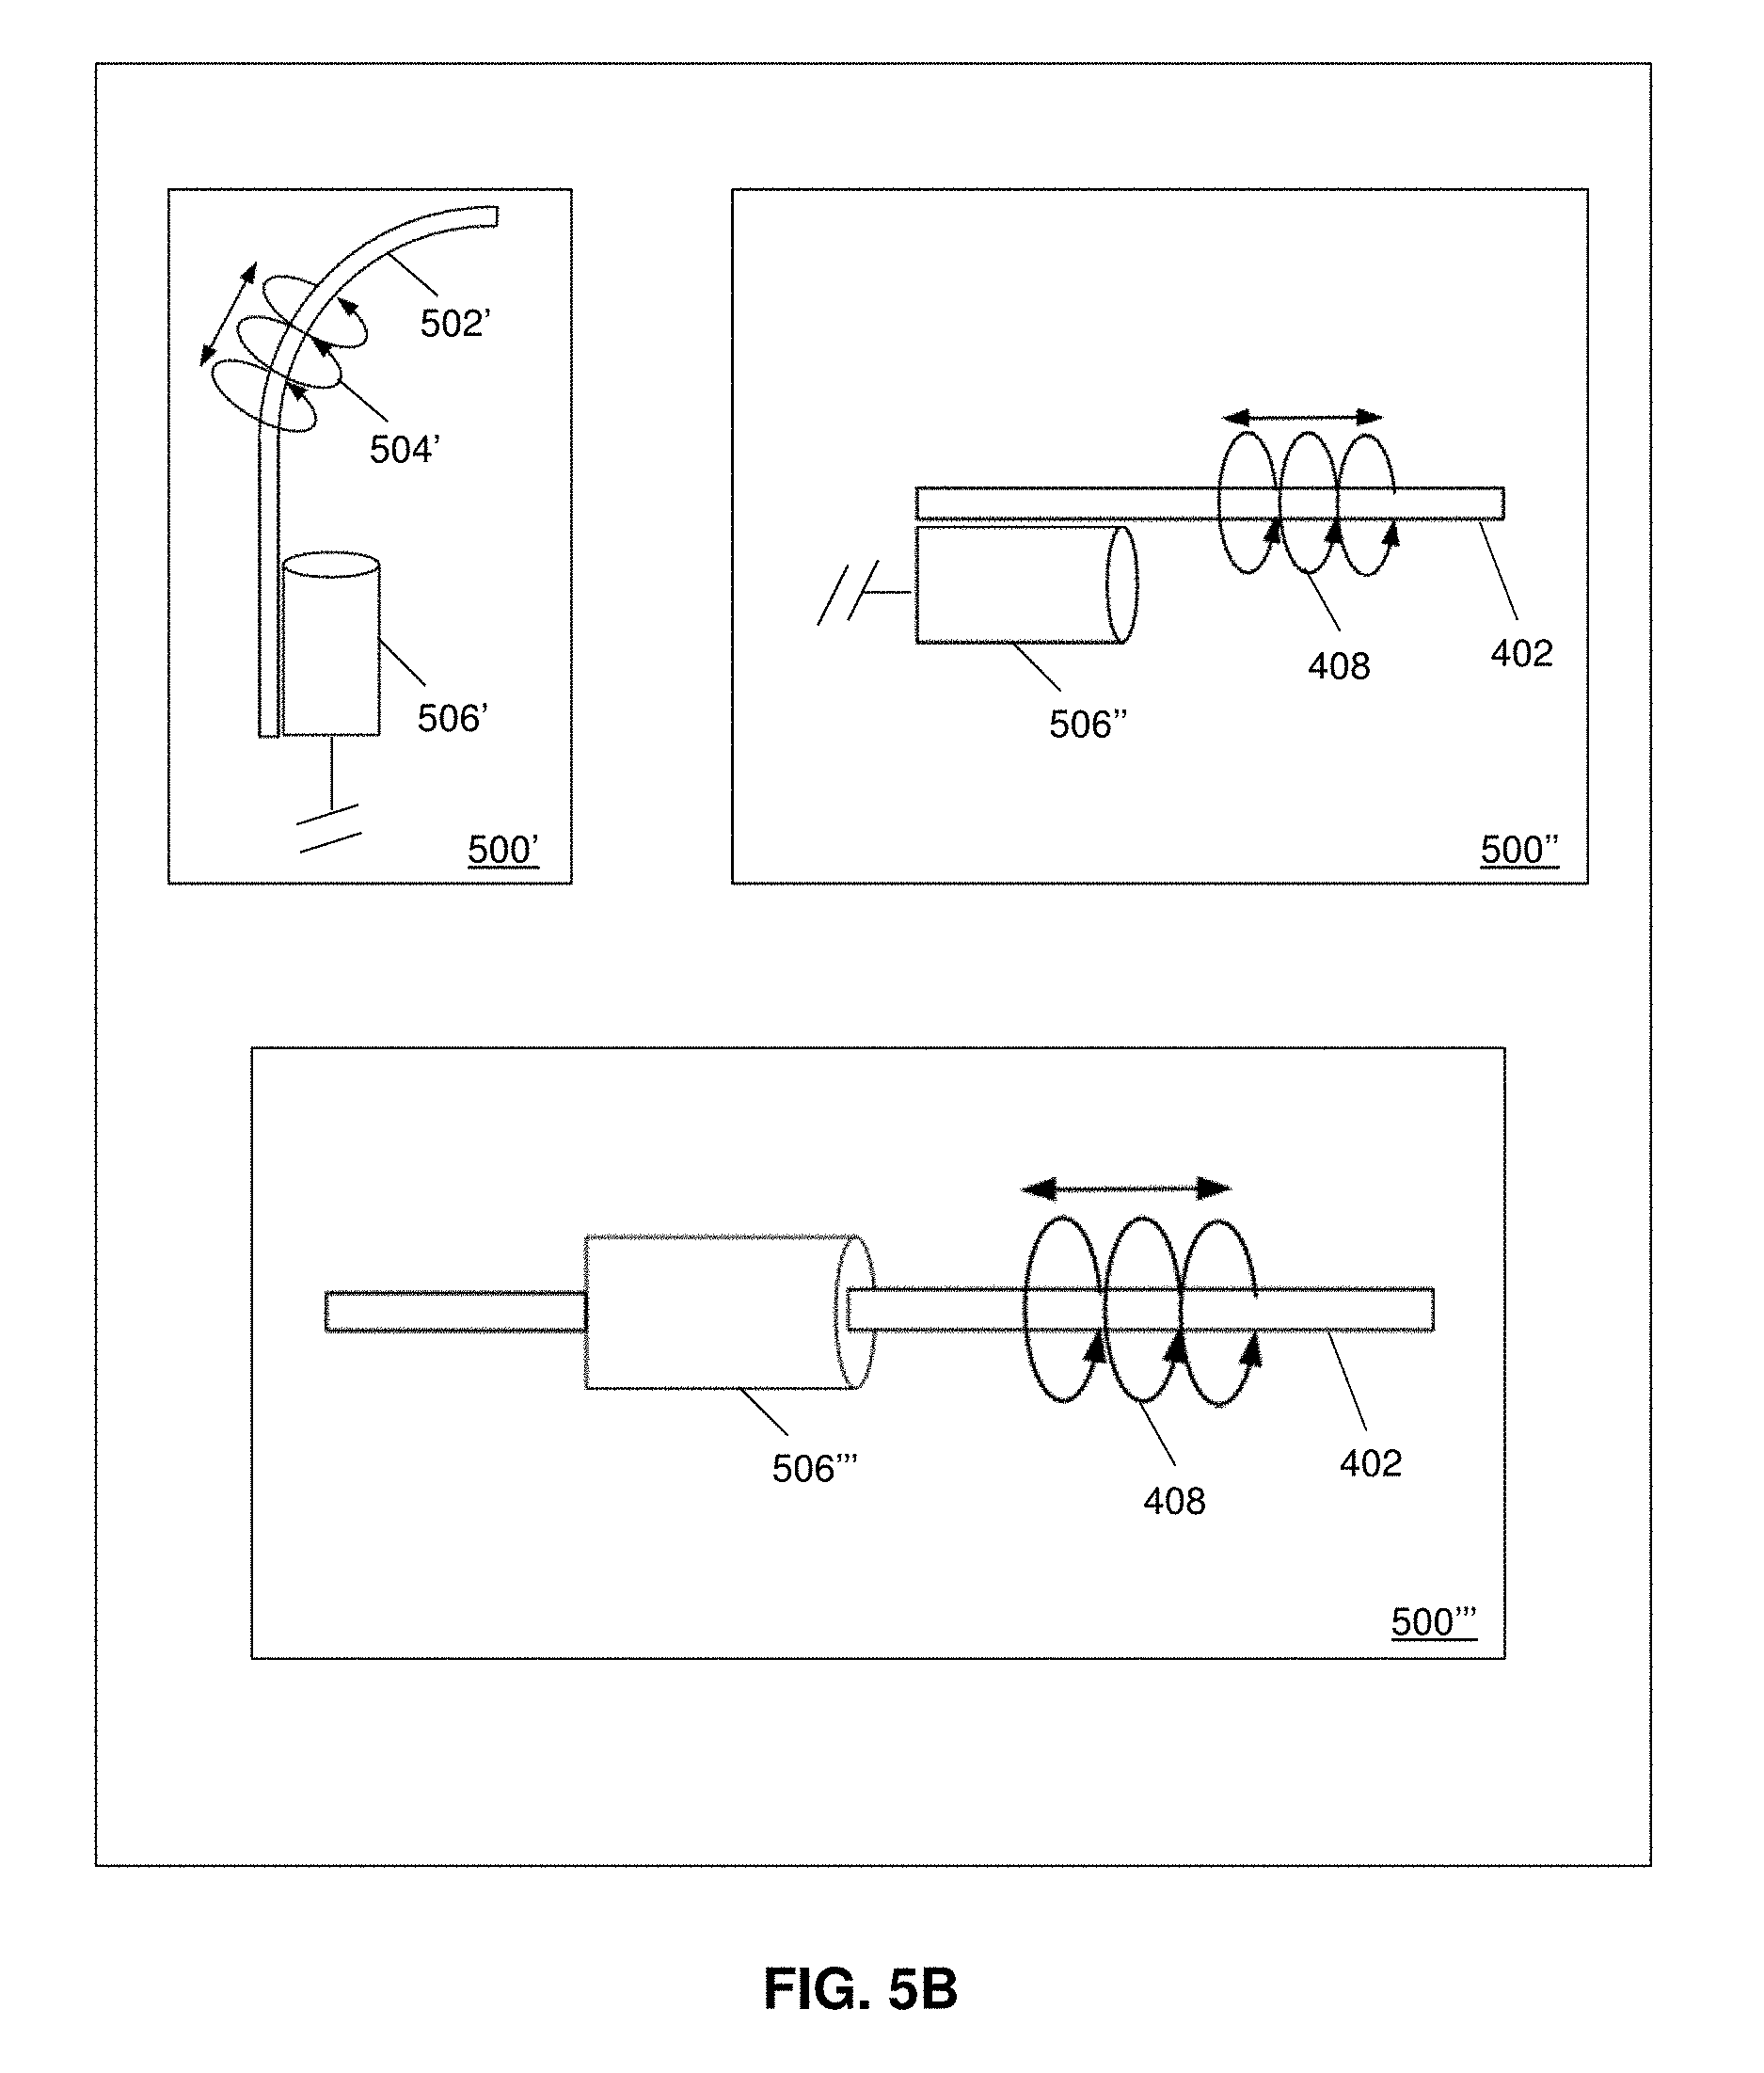 Us9800327b2 Apparatus For Controlling Operations Of A International 9800 Fuse Box Communication Device And Methods Thereof Google Patents